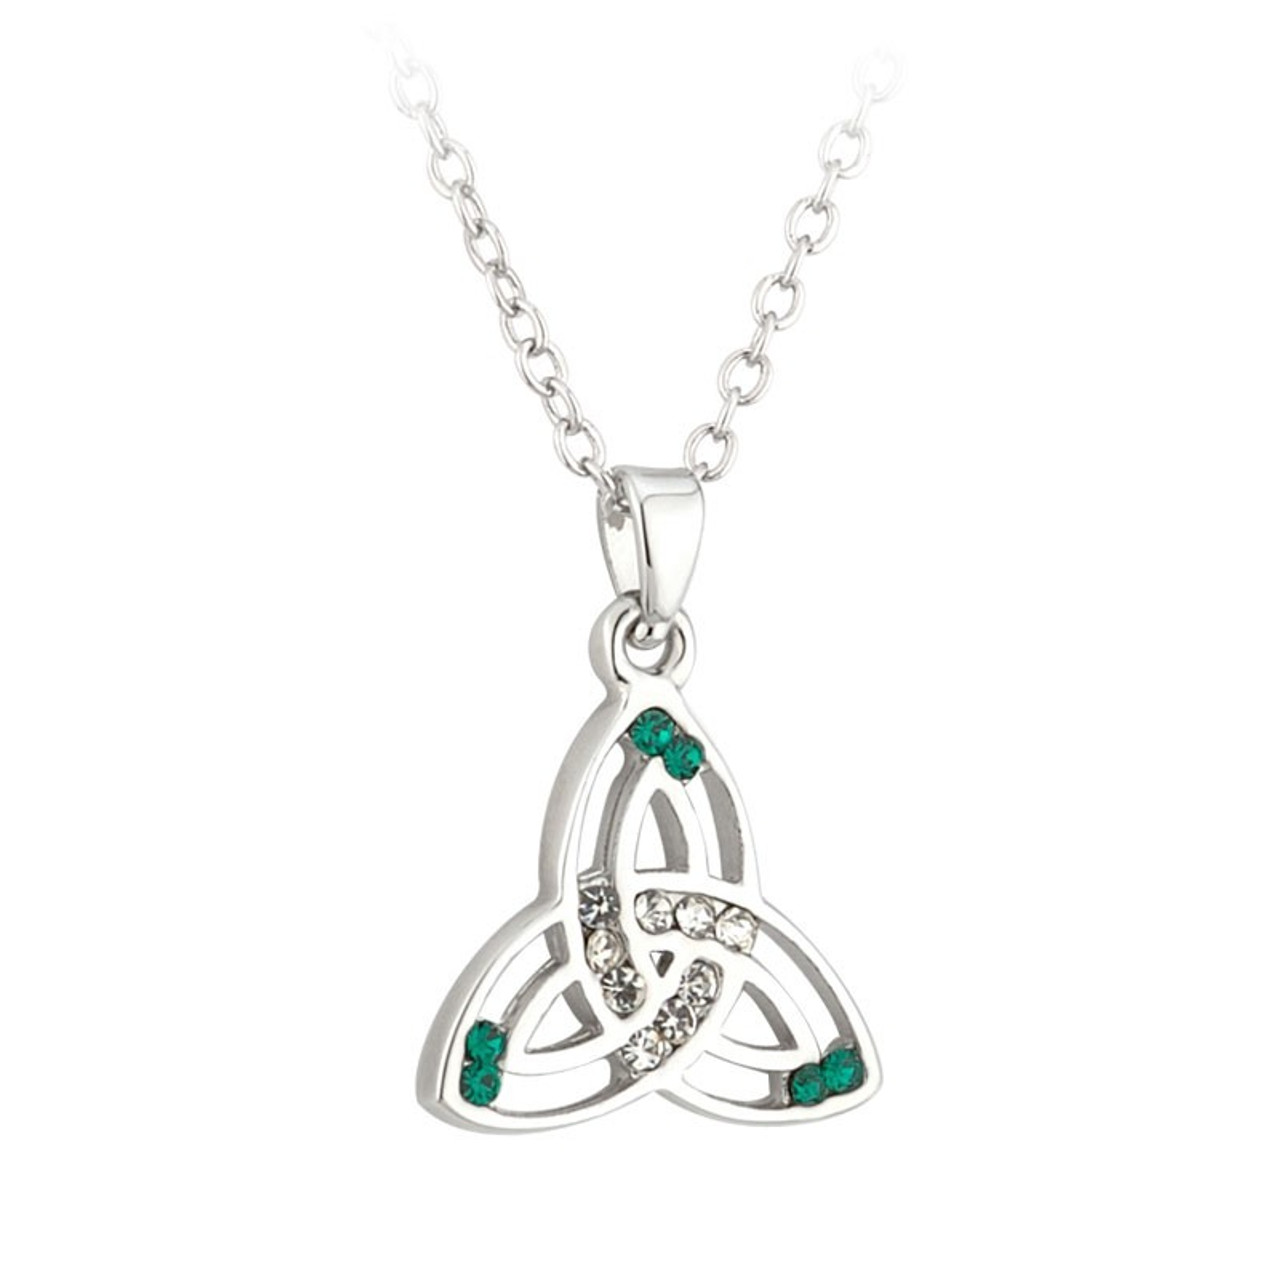 Rhodium Plated Trinity Knot Pendant with Green Stone